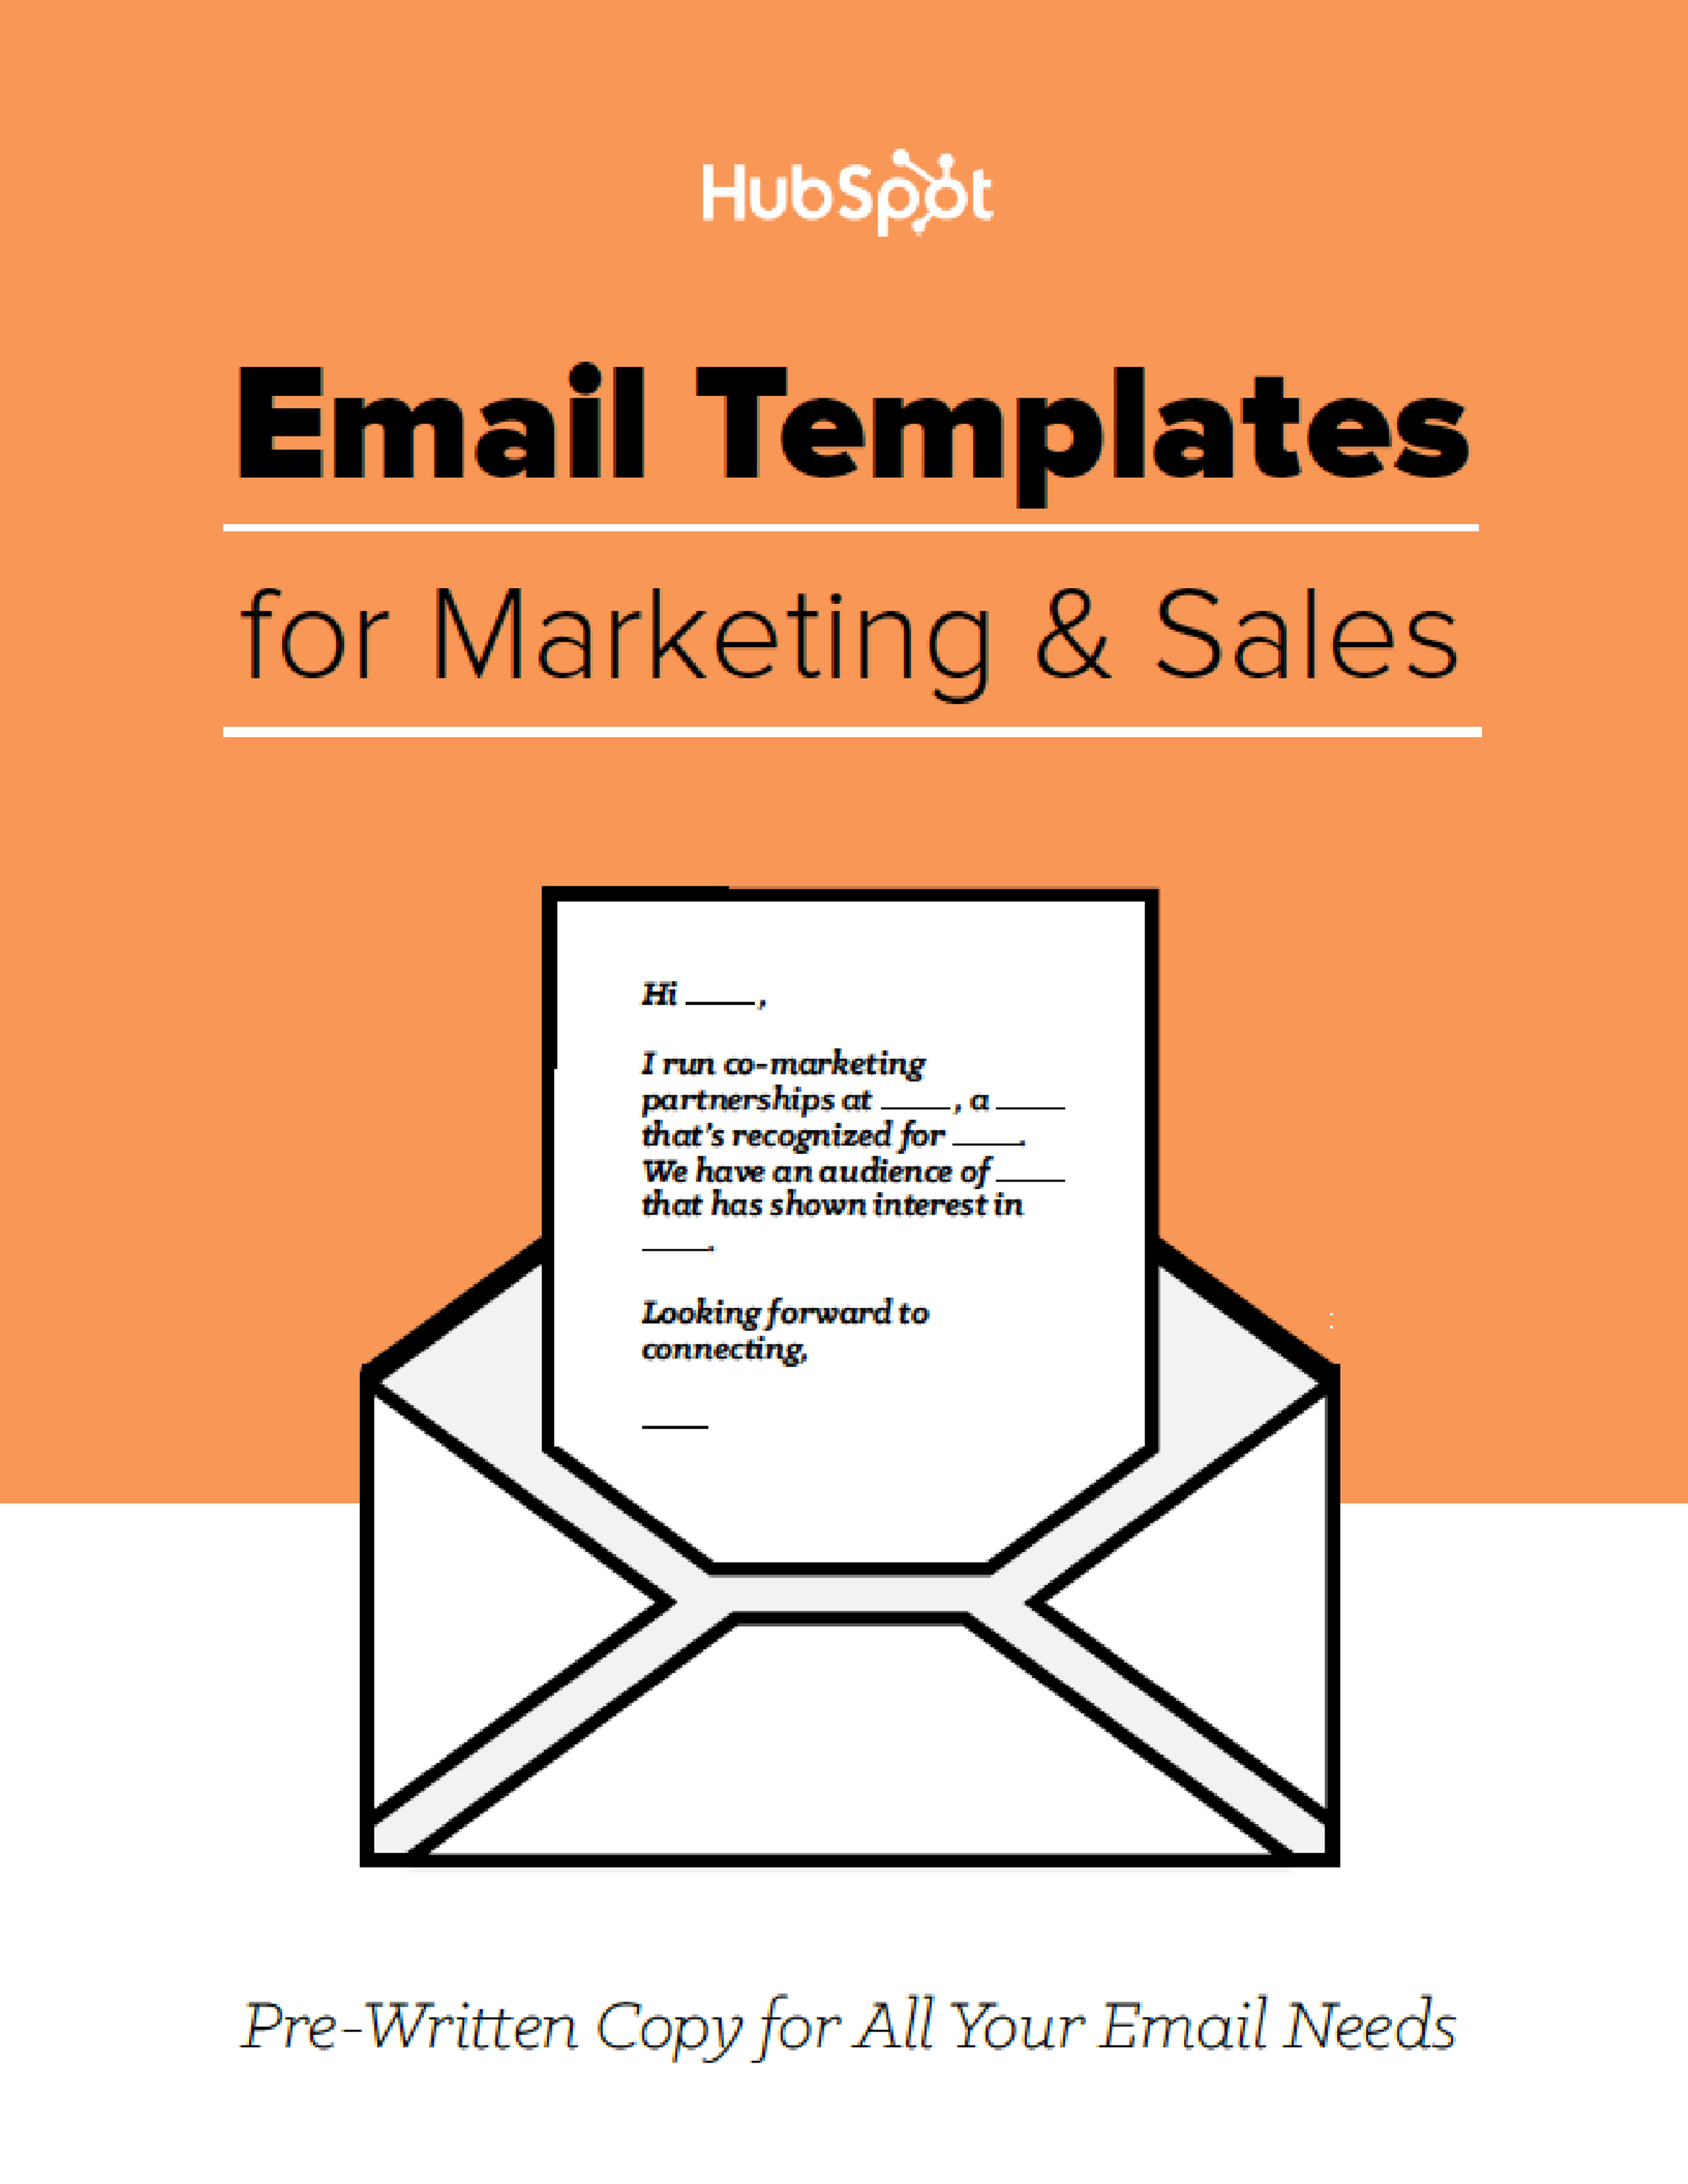 Email templates for startups and entrepreneurs